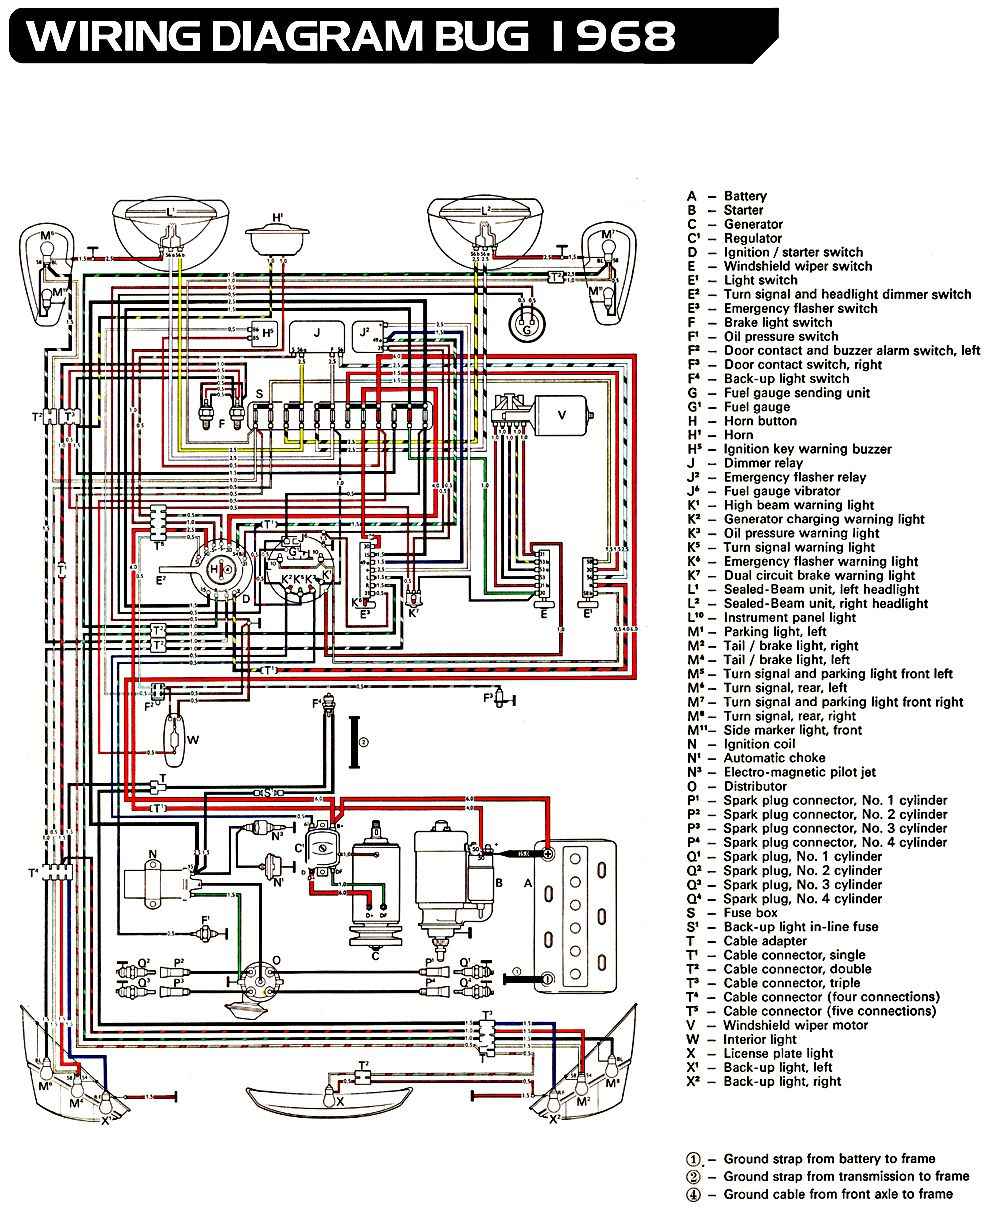 3a1908112d3826270ed5e3be362292bf vw bug ignition wiring diagram 73 vw wiring diagram free  at eliteediting.co